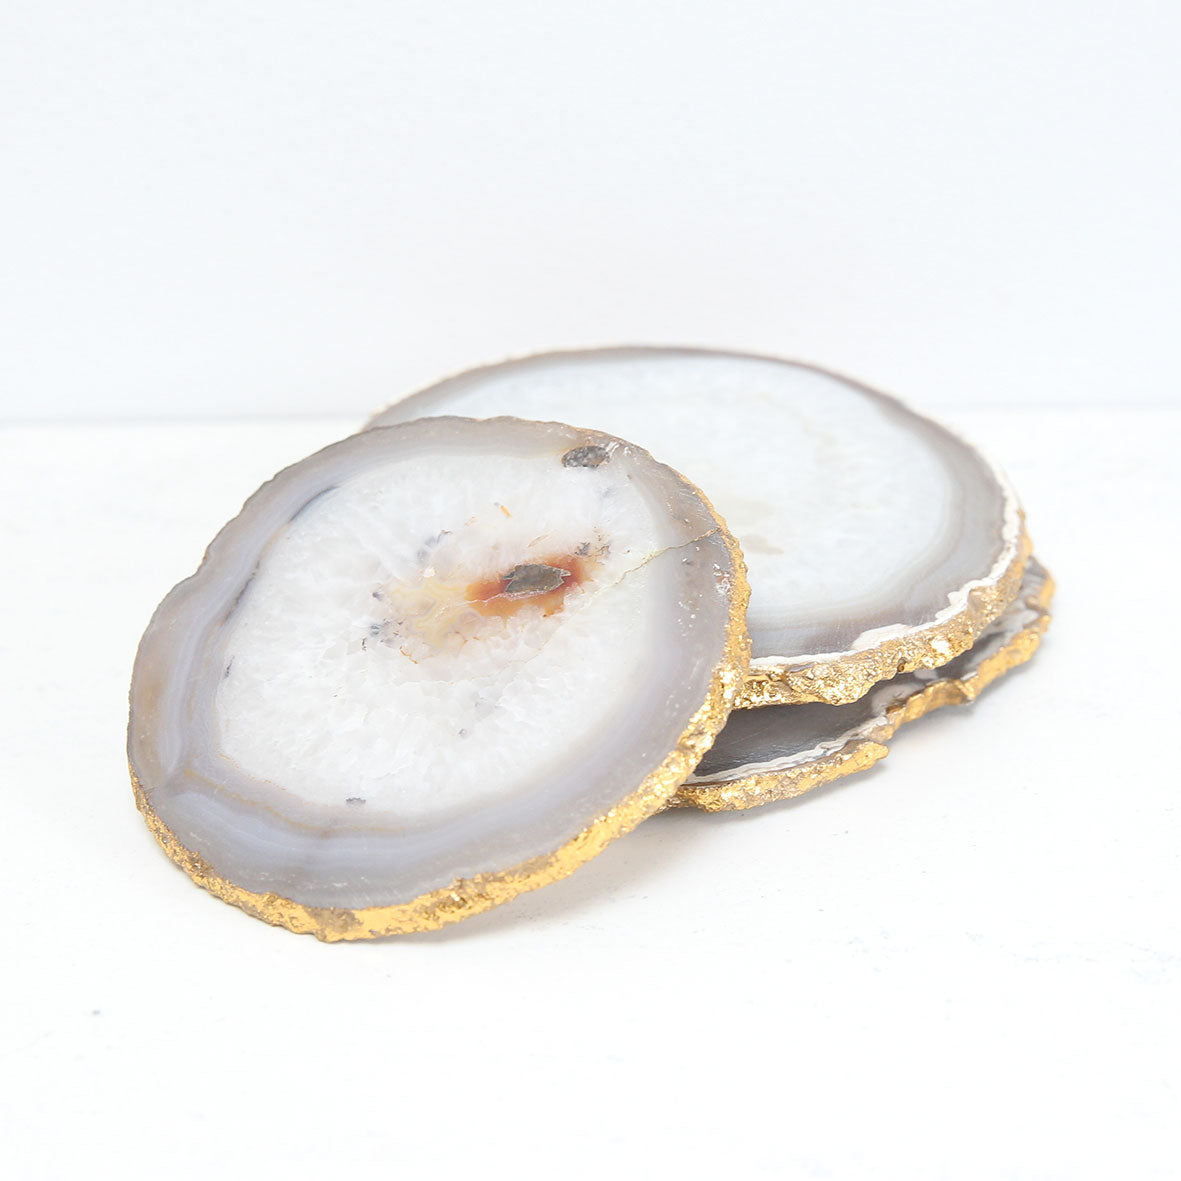 Gold and agate coaster